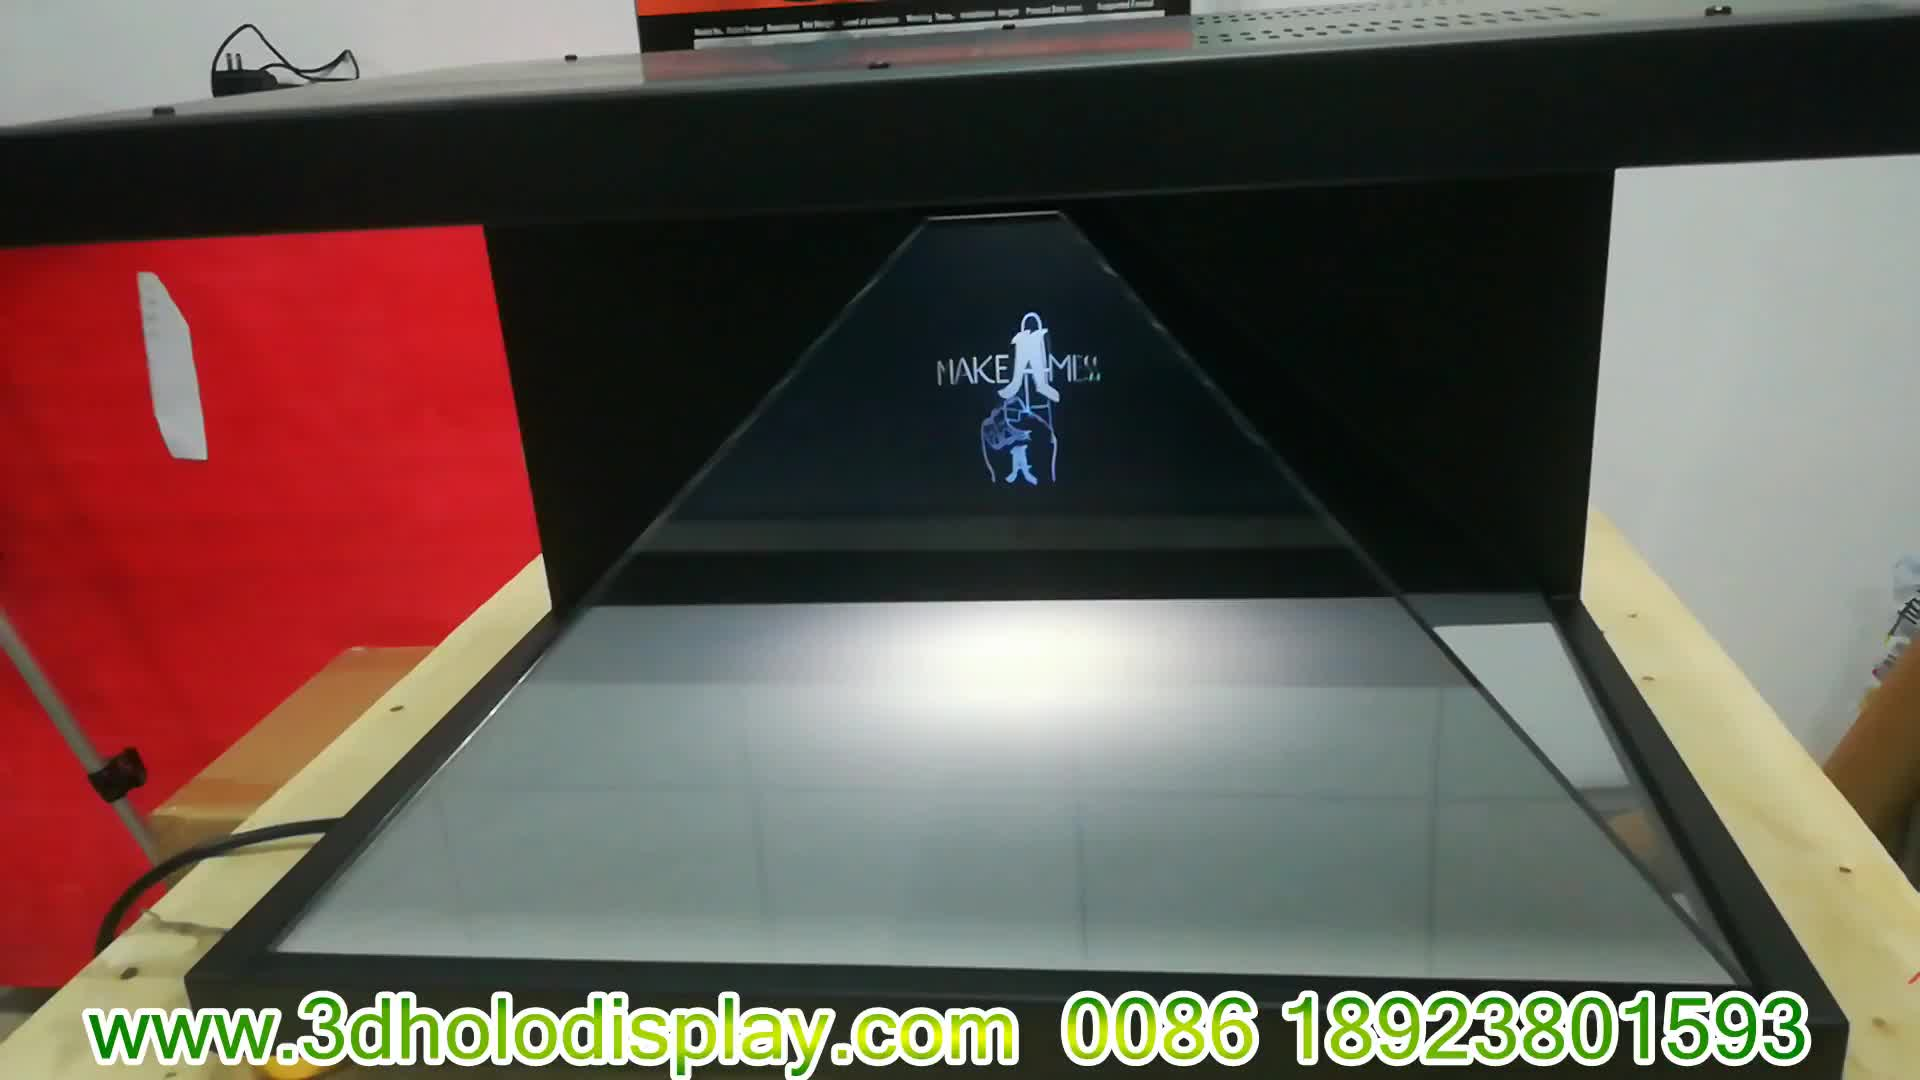 Professional Maker 3d Hologram Projector Pyramid Showcase Holographic  Display - Buy 3d Hologram Pyramid,3d Hologram Projector,Hologram Projector